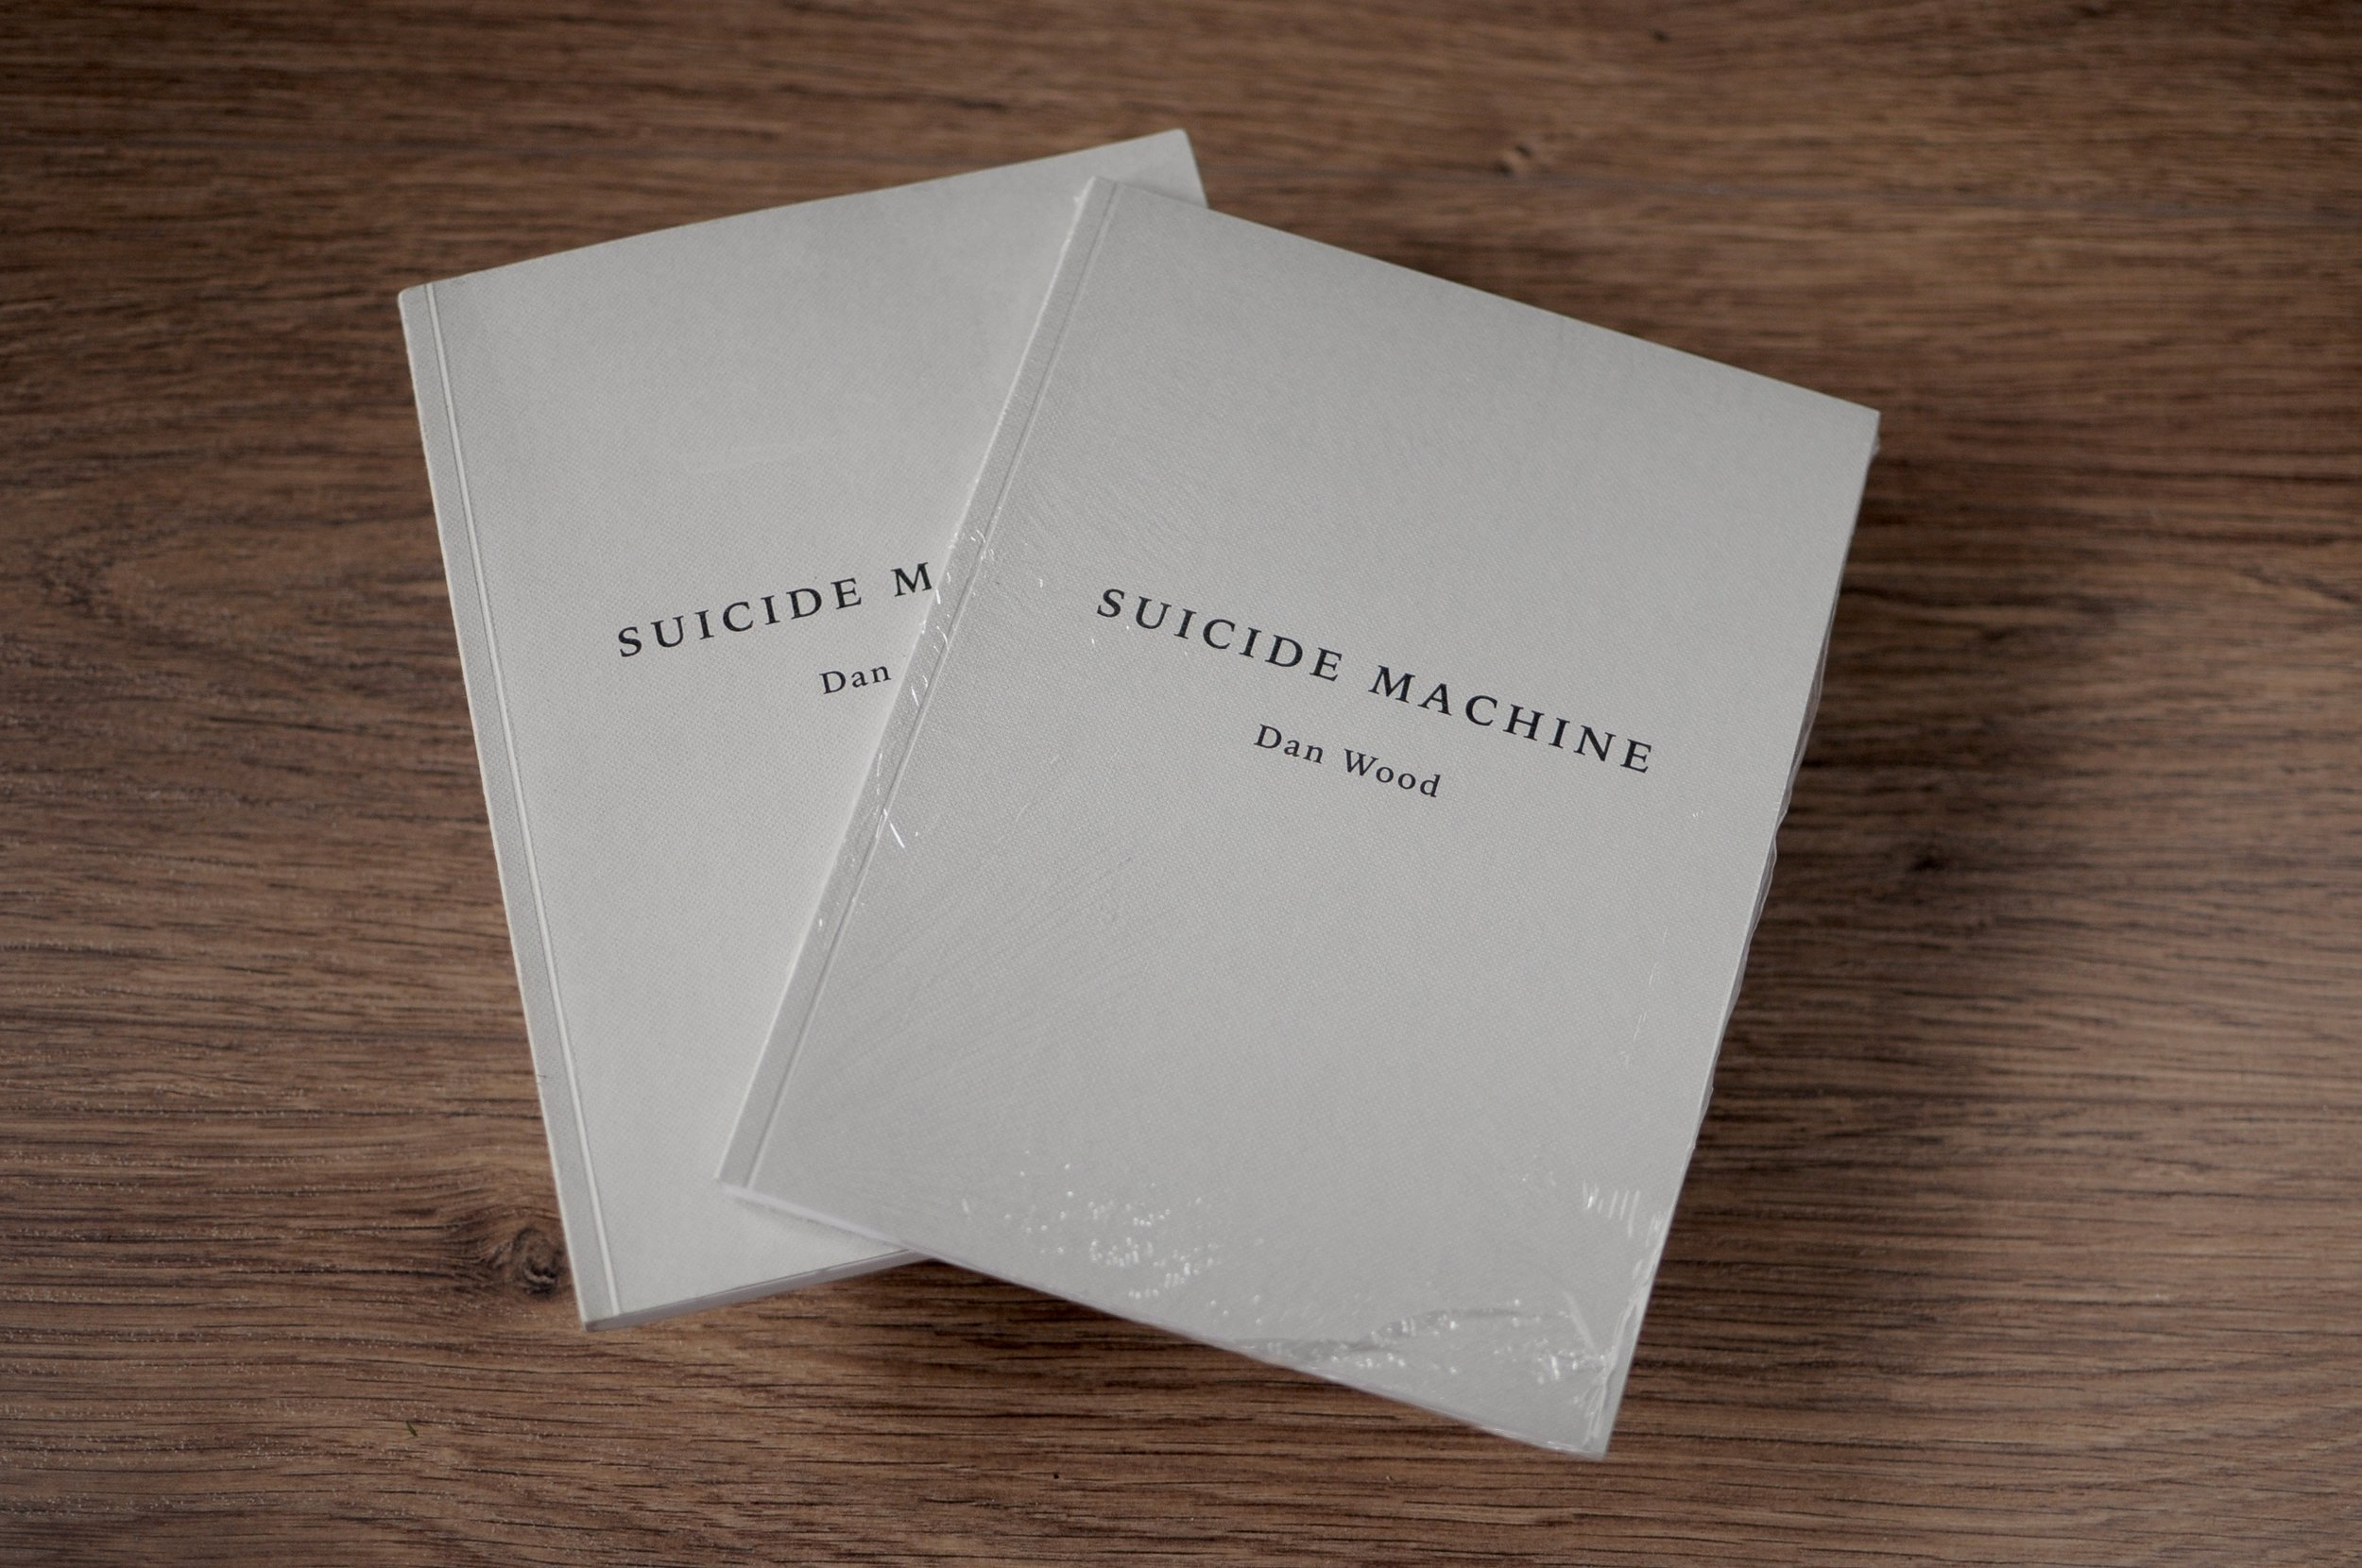 SOLD OUT. Suicide Machine, Another Place Press, 2016.